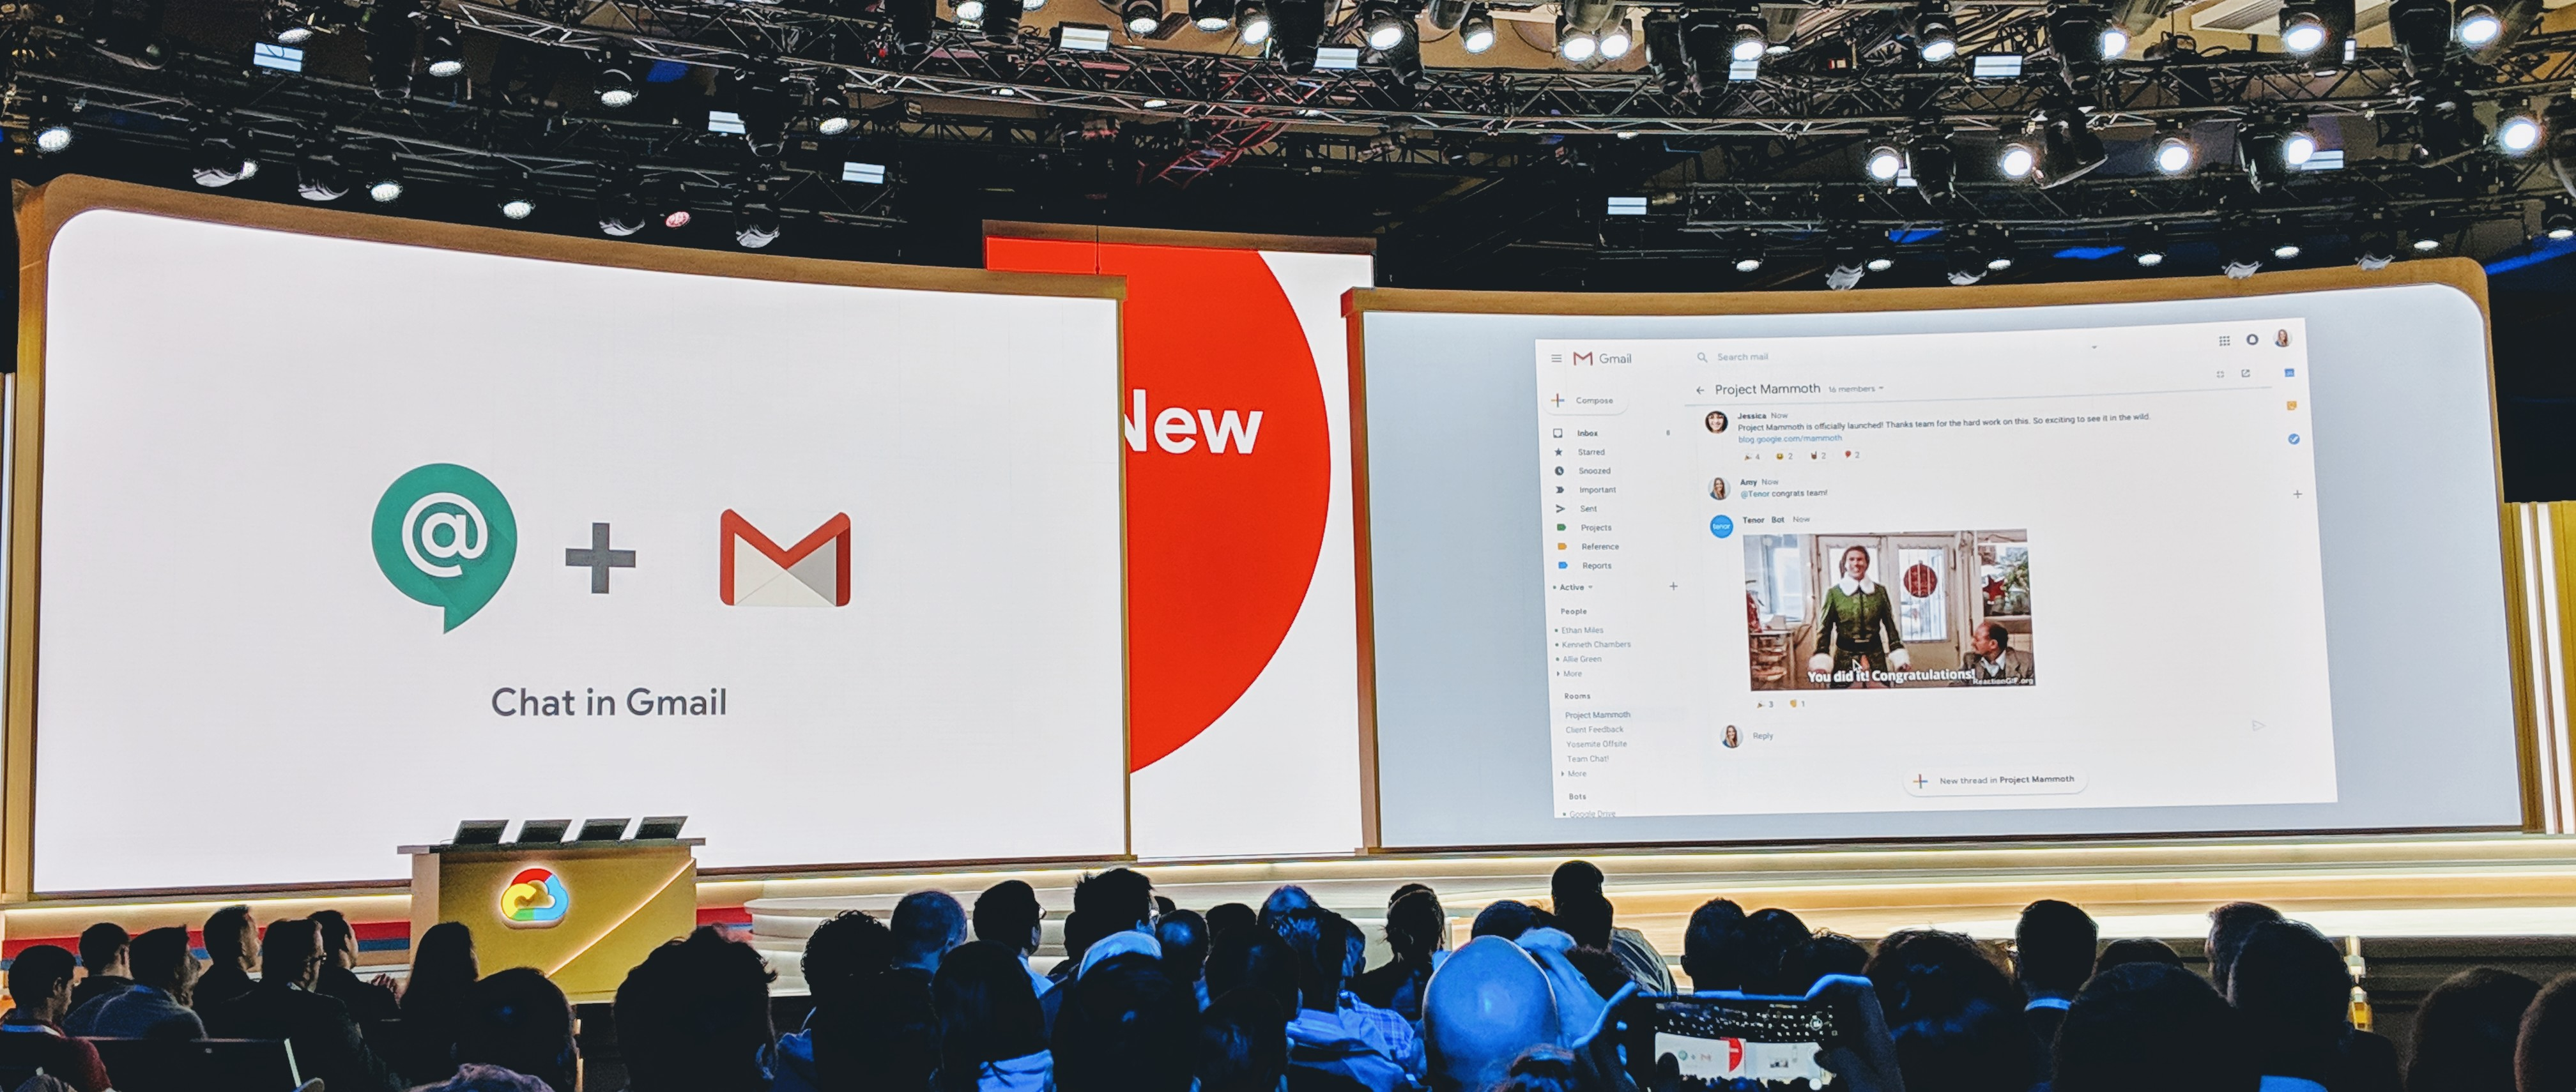 Hangouts Chat is coming to Gmail for G Suite users Hangouts Chat is coming to Gmail for G Suite users IMG 20190410 101059 1